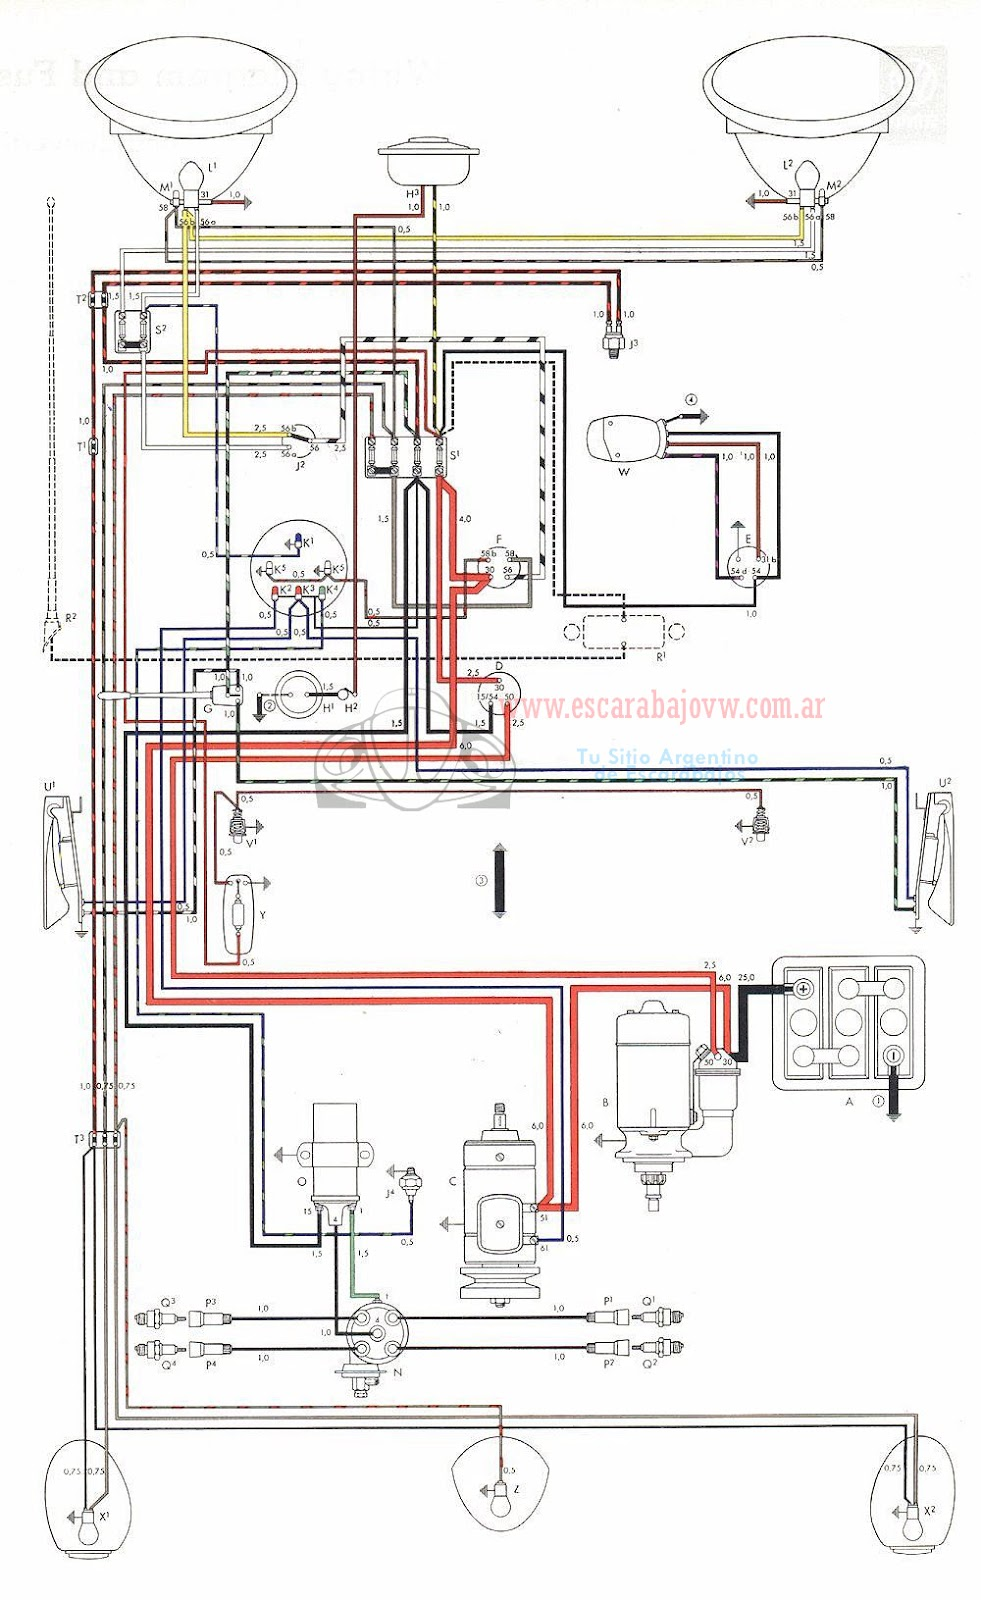 hight resolution of 2012 chevrolet sonic wiring diagram 2014 chevrolet 1998 chevy malibu engine diagram 2013 chevy malibu engine